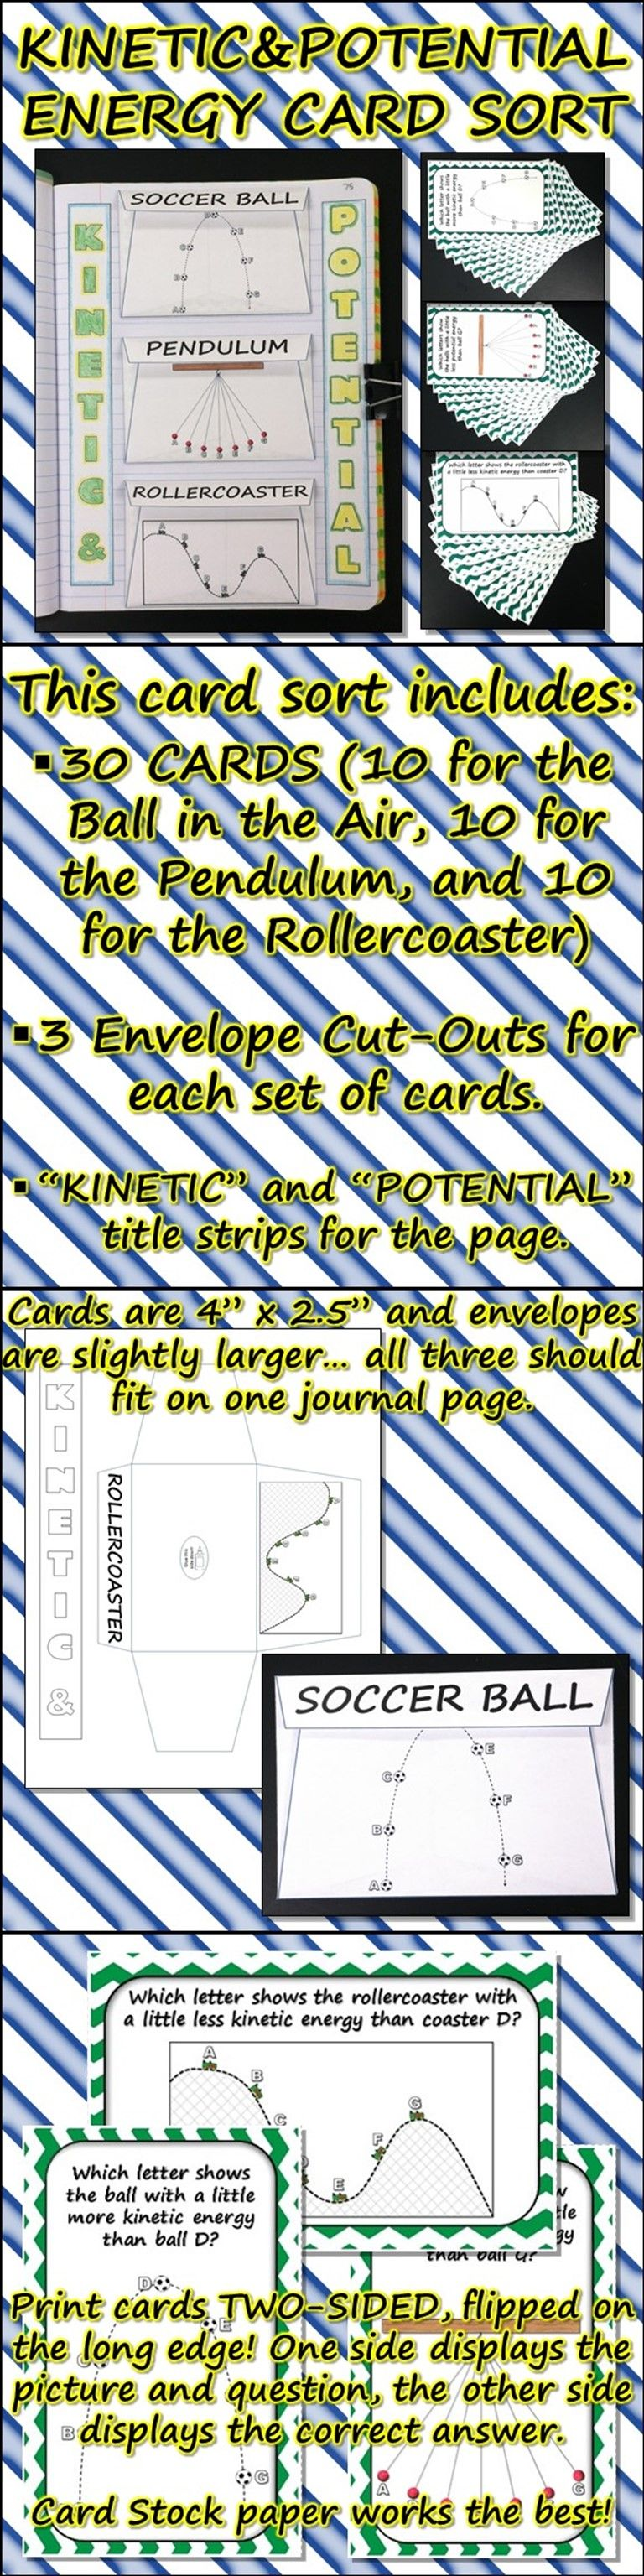 science journal  kinetic and potential energy card sort